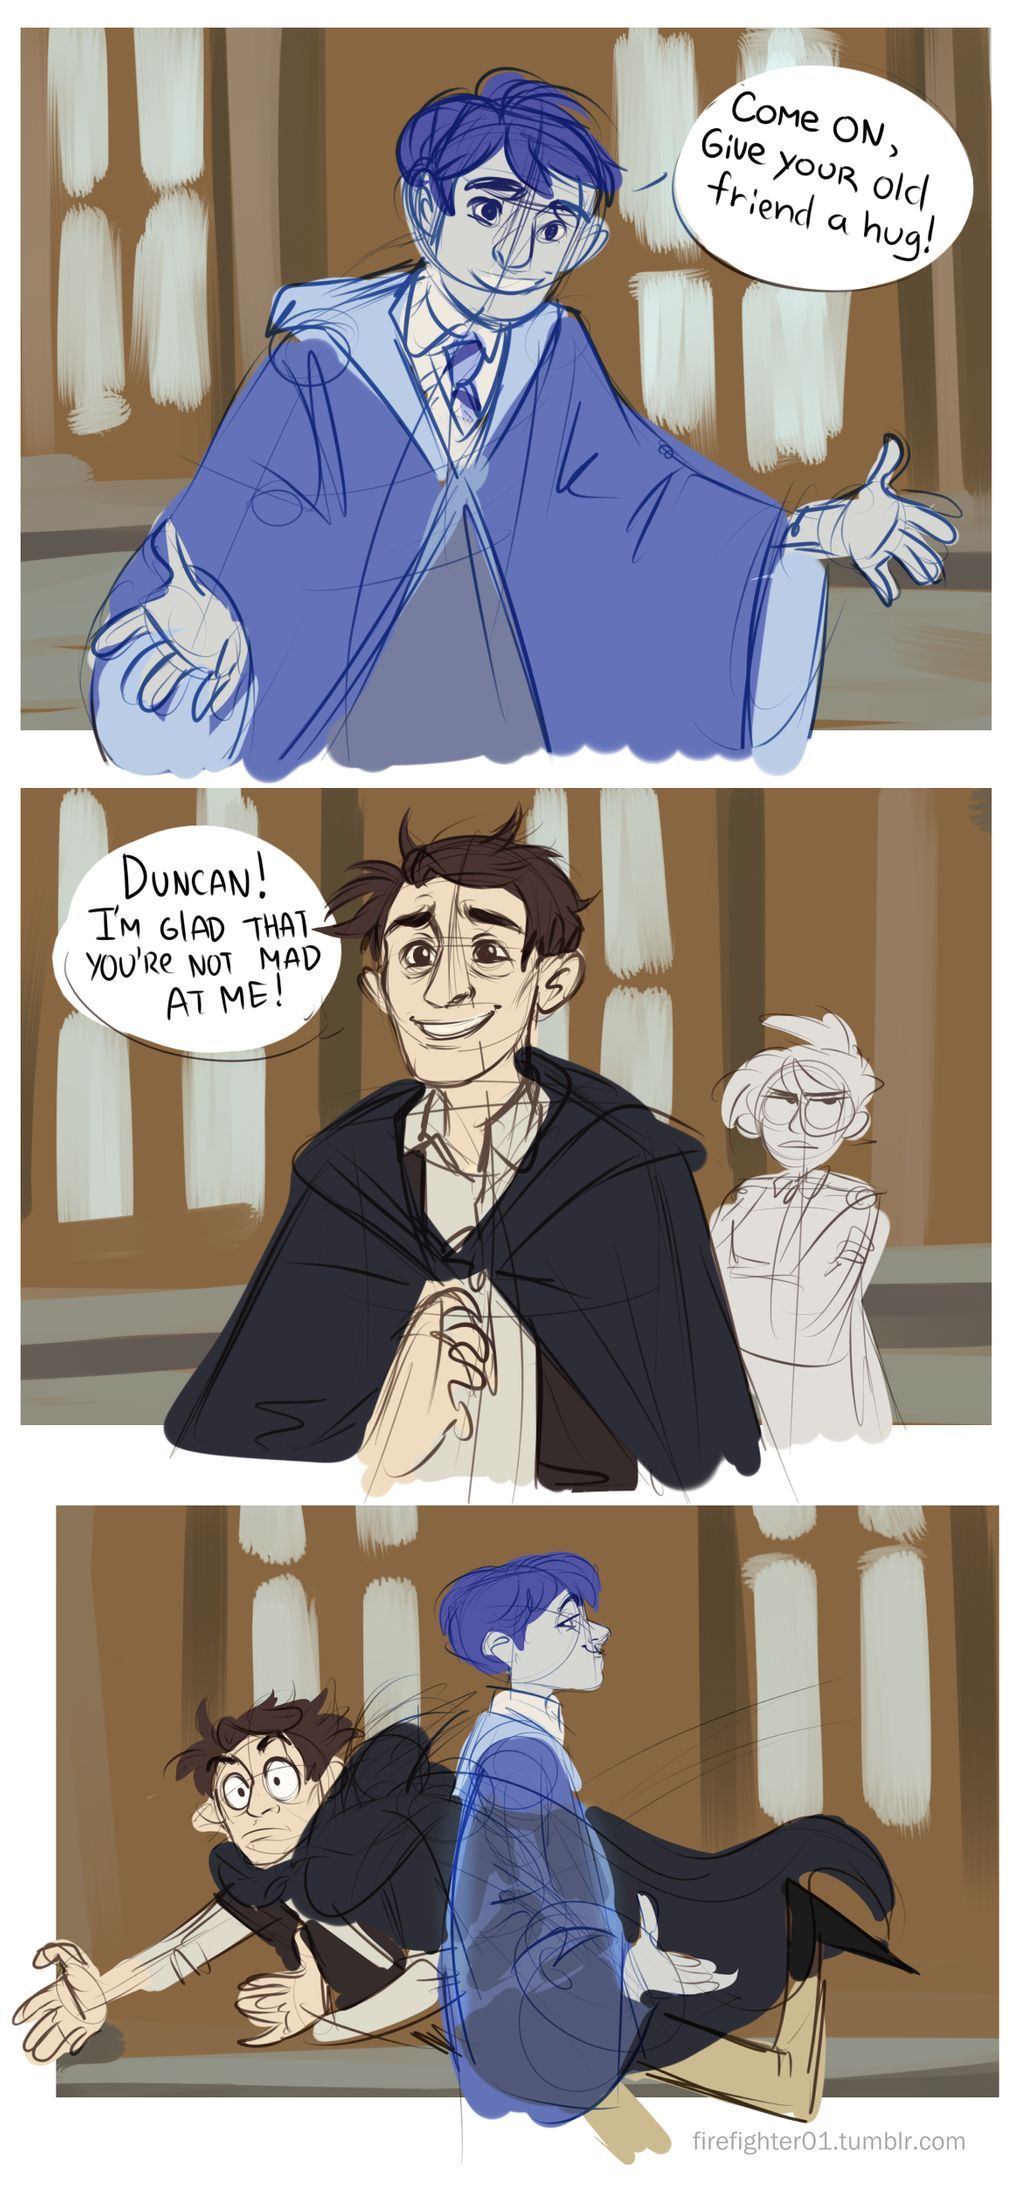 Hm Jacob And Duncan By Happy Eevee On Deviantart Hogwarts Mystery Harry Potter Comics Hogwarts Games